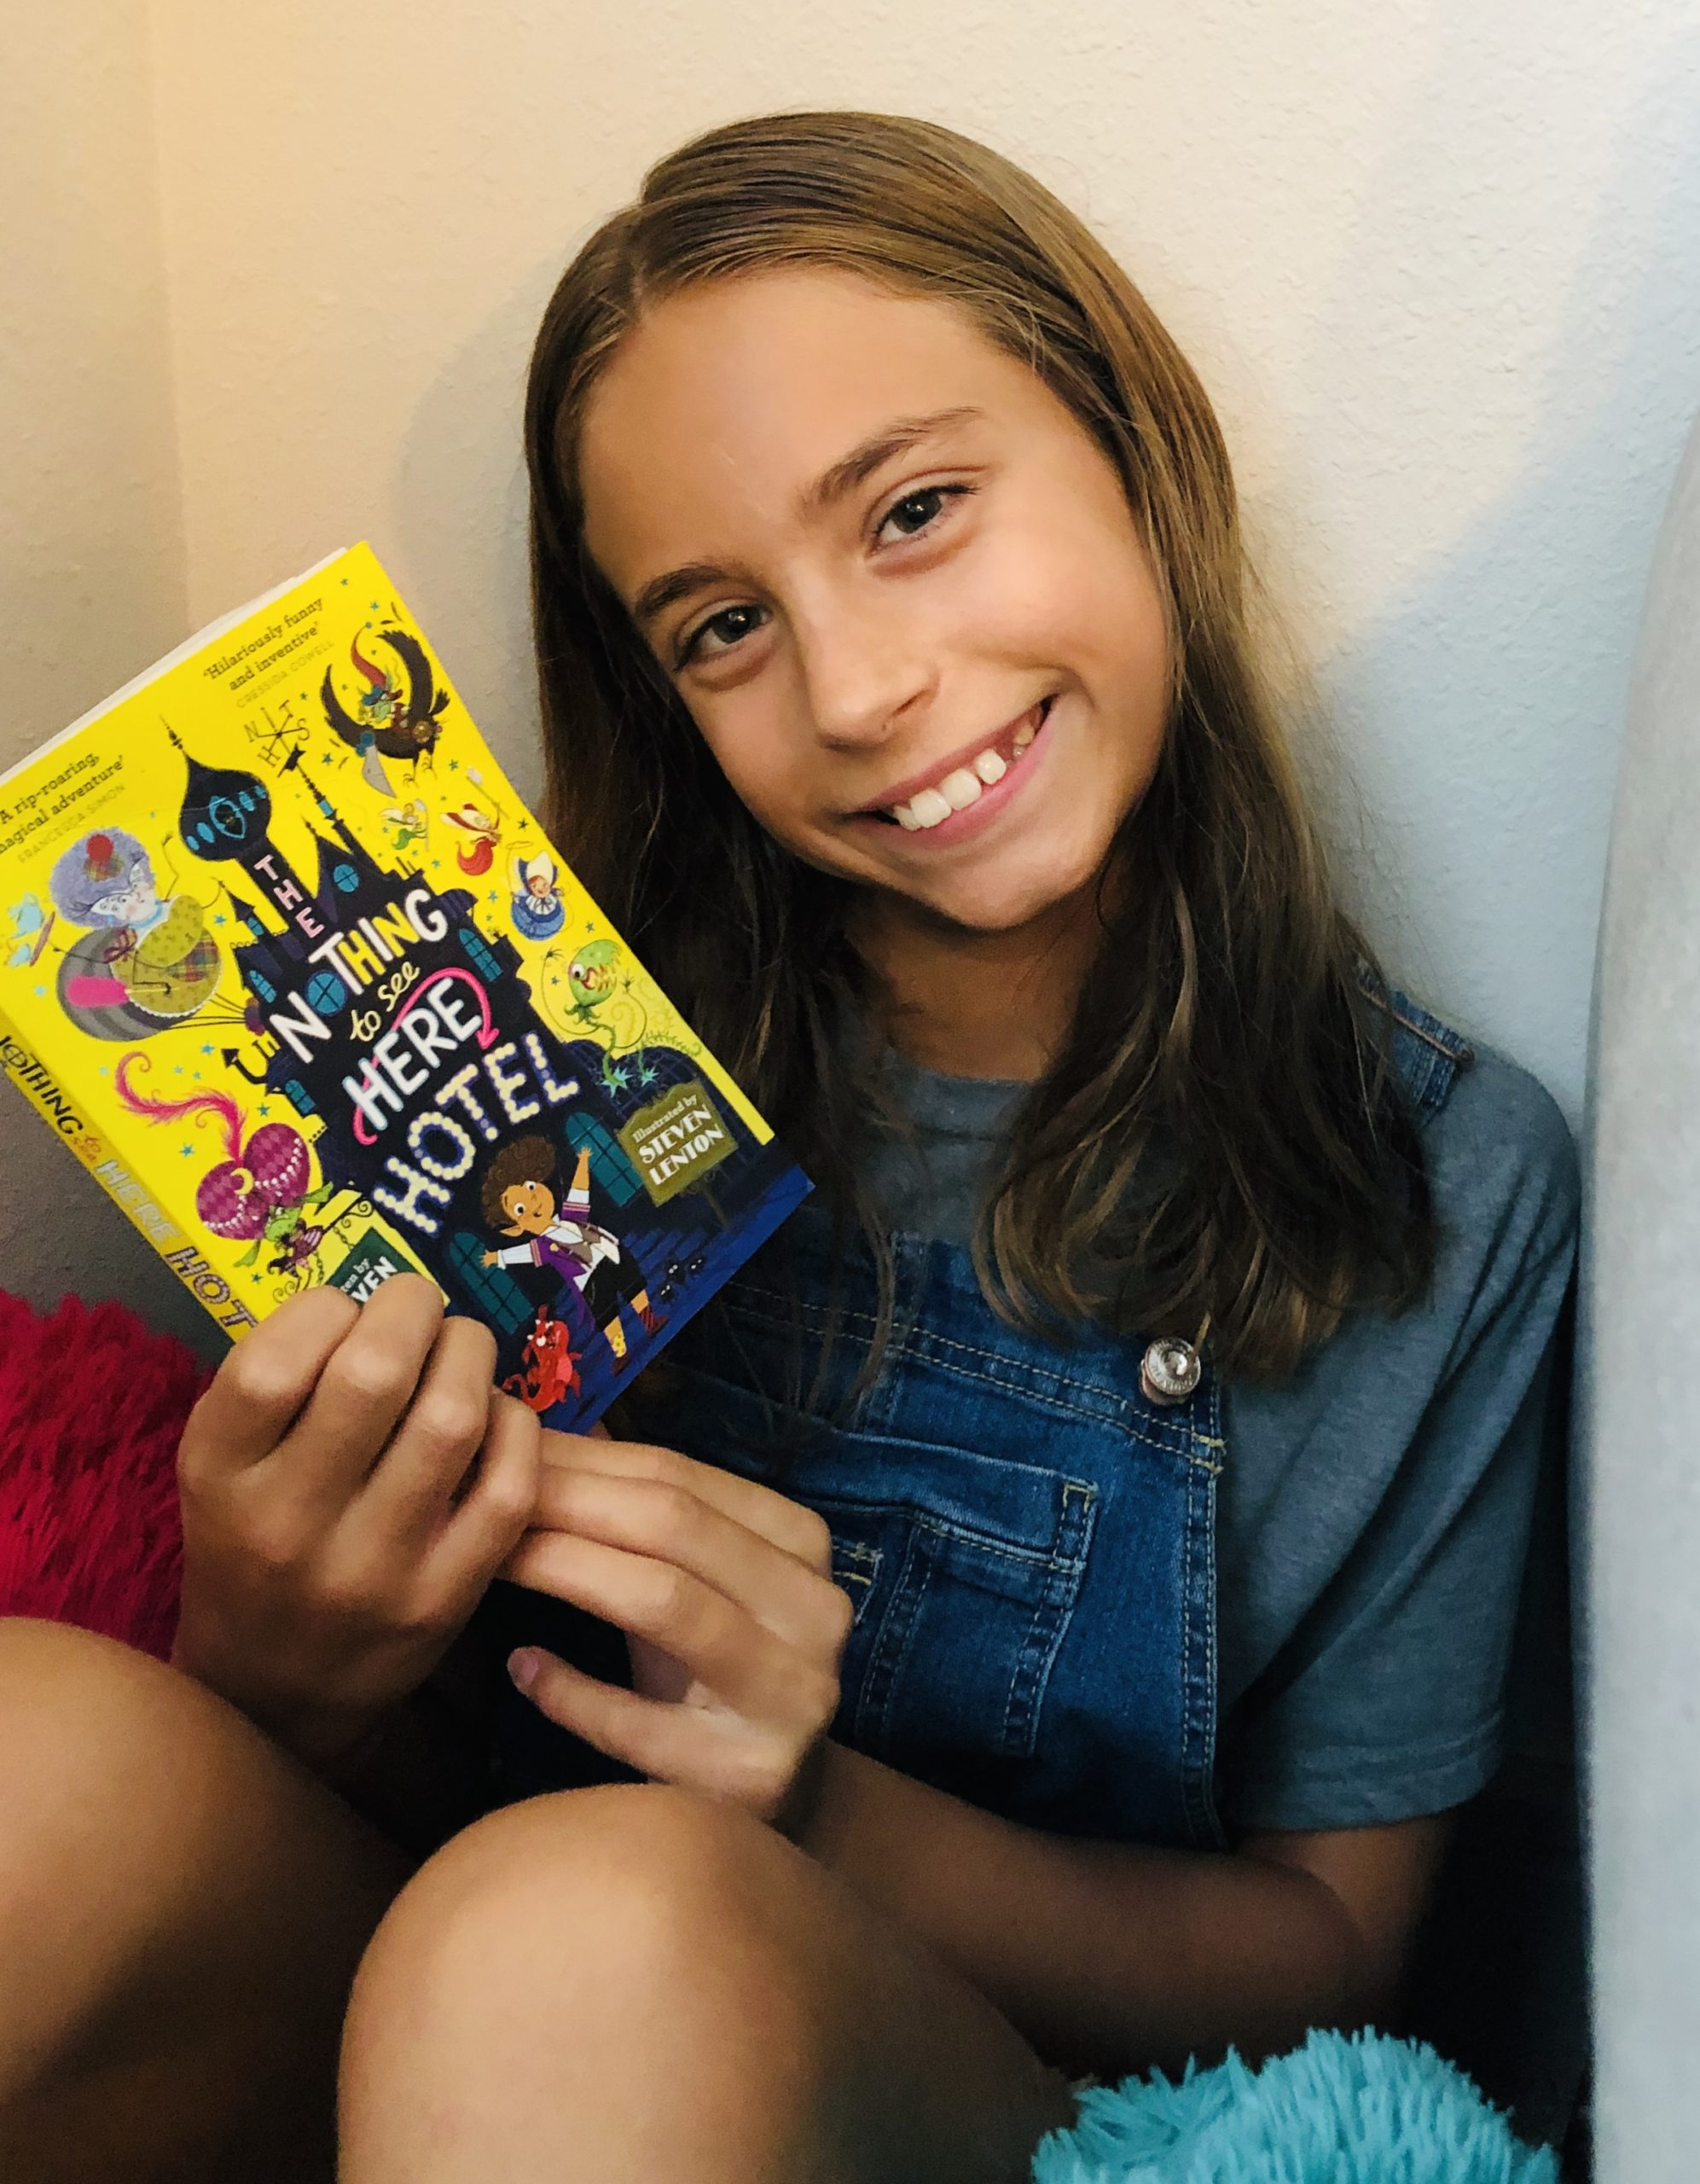 Kinley holding the book , The Nothing to see Here Hotel by Steven Butler for the the Children's Book Review.